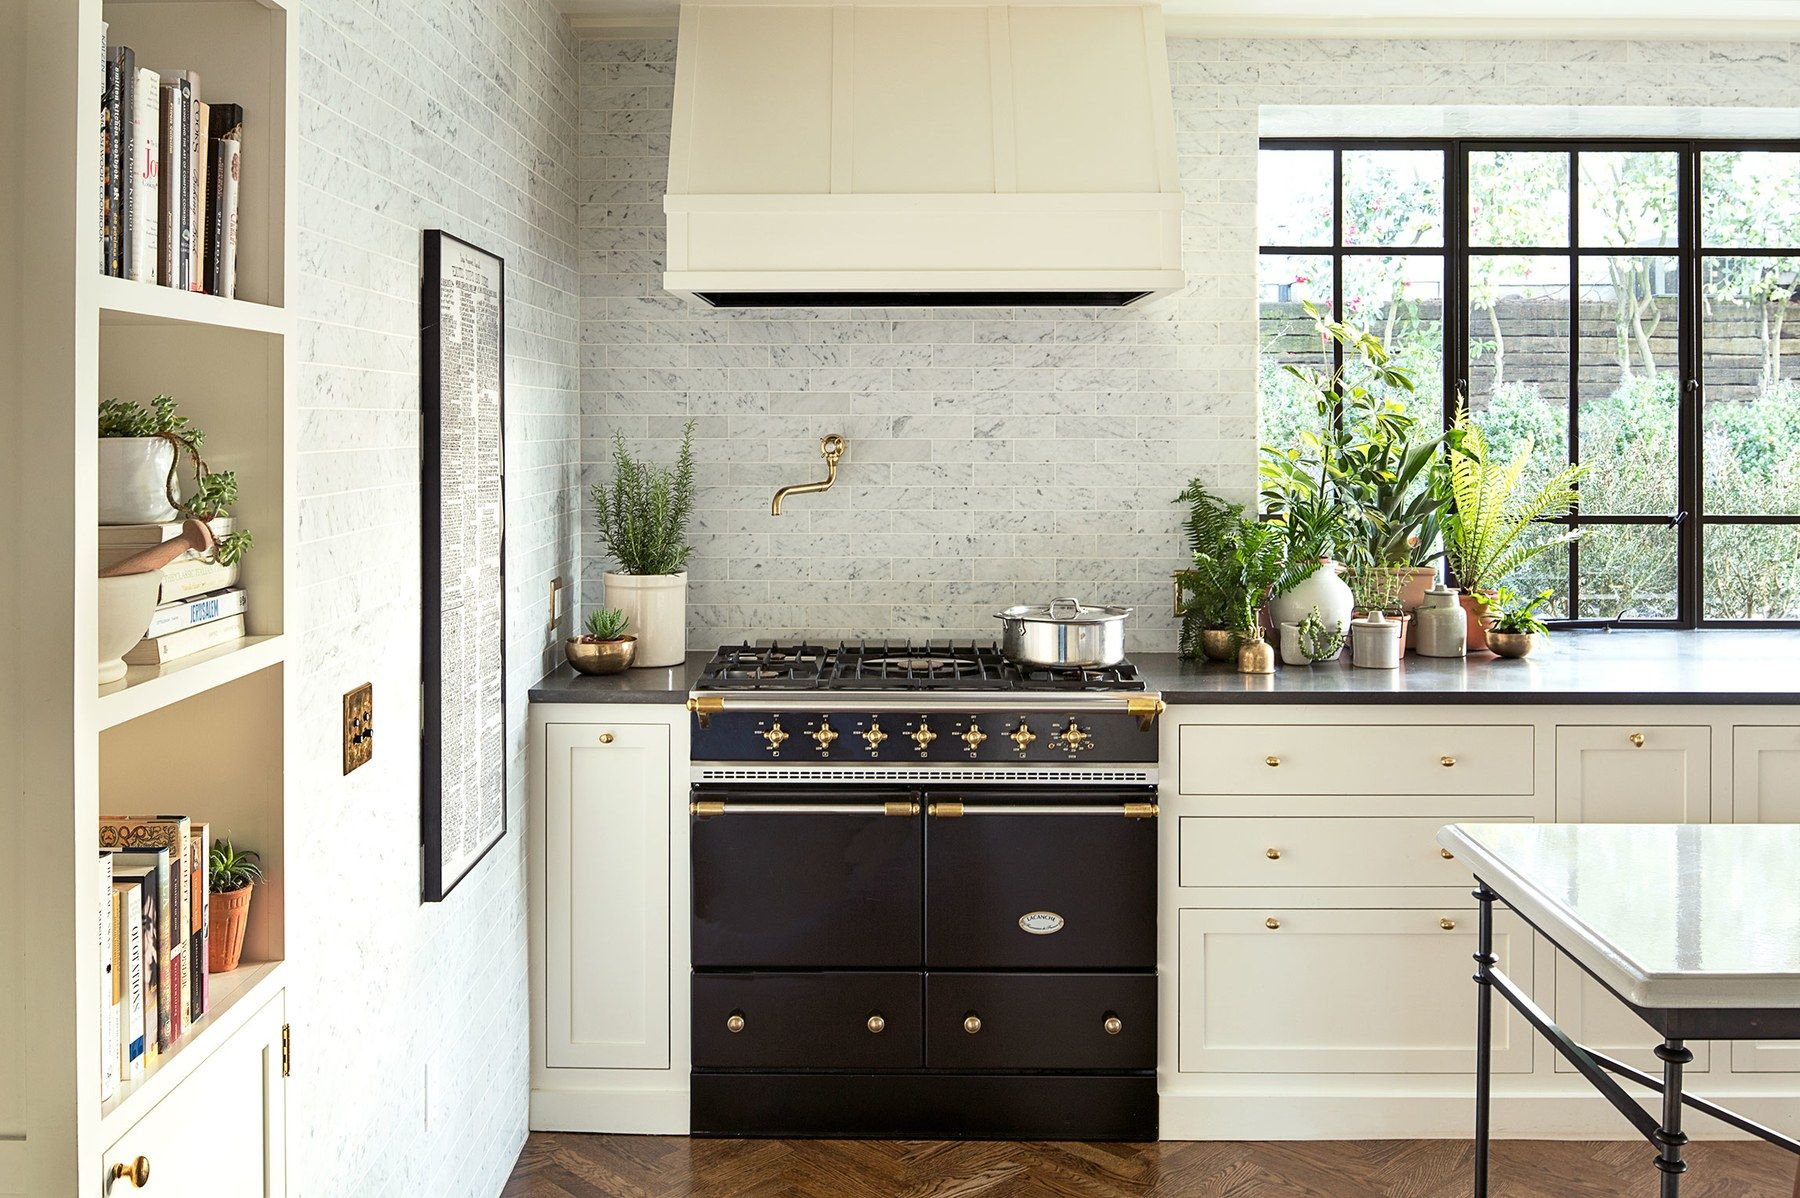 A 1920s House With A Modern Twist In Portland Oregon Kitchen Remodel 1920s House Kitchen Decor